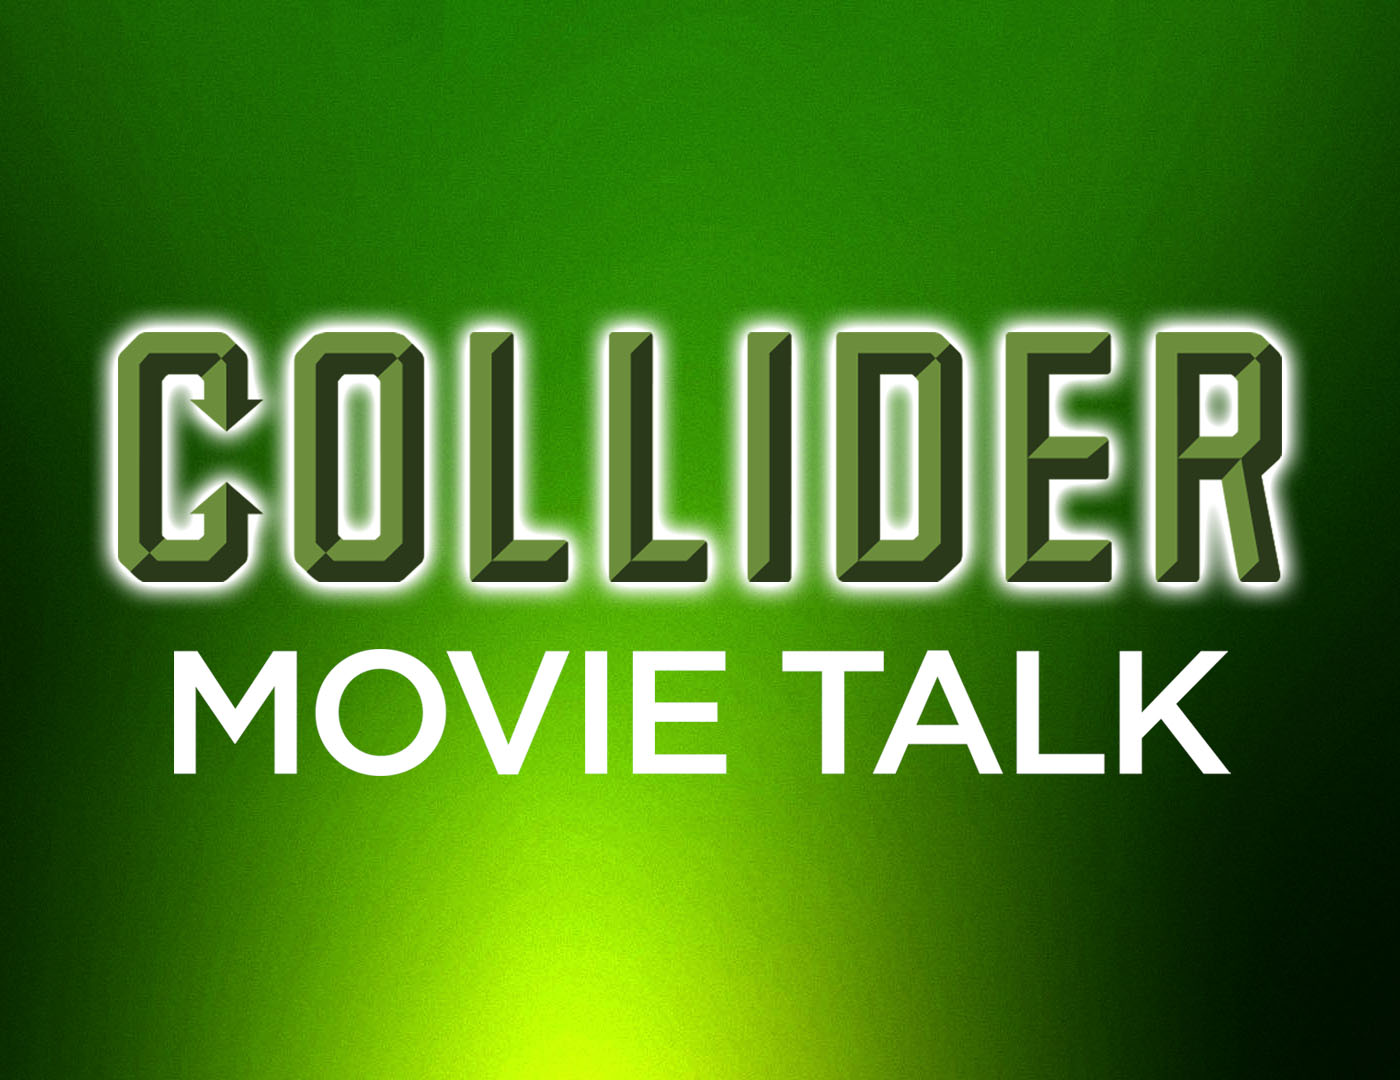 Collider Movie Talk - The Flash Director Seth Grahame-Smith Drops Out